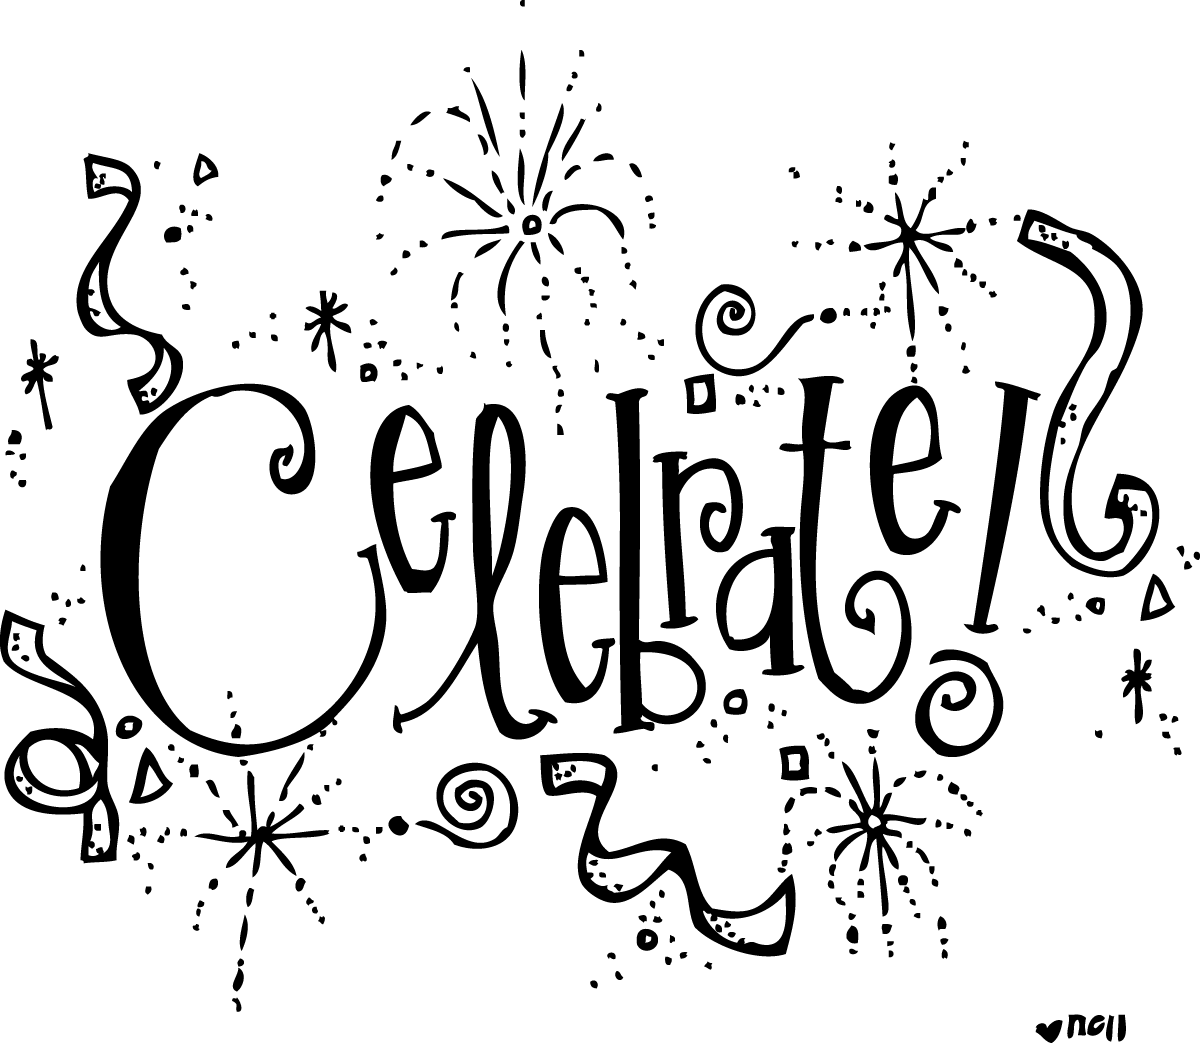 Celebrate Clipart Celebration Pictures Celebrate Clip Art